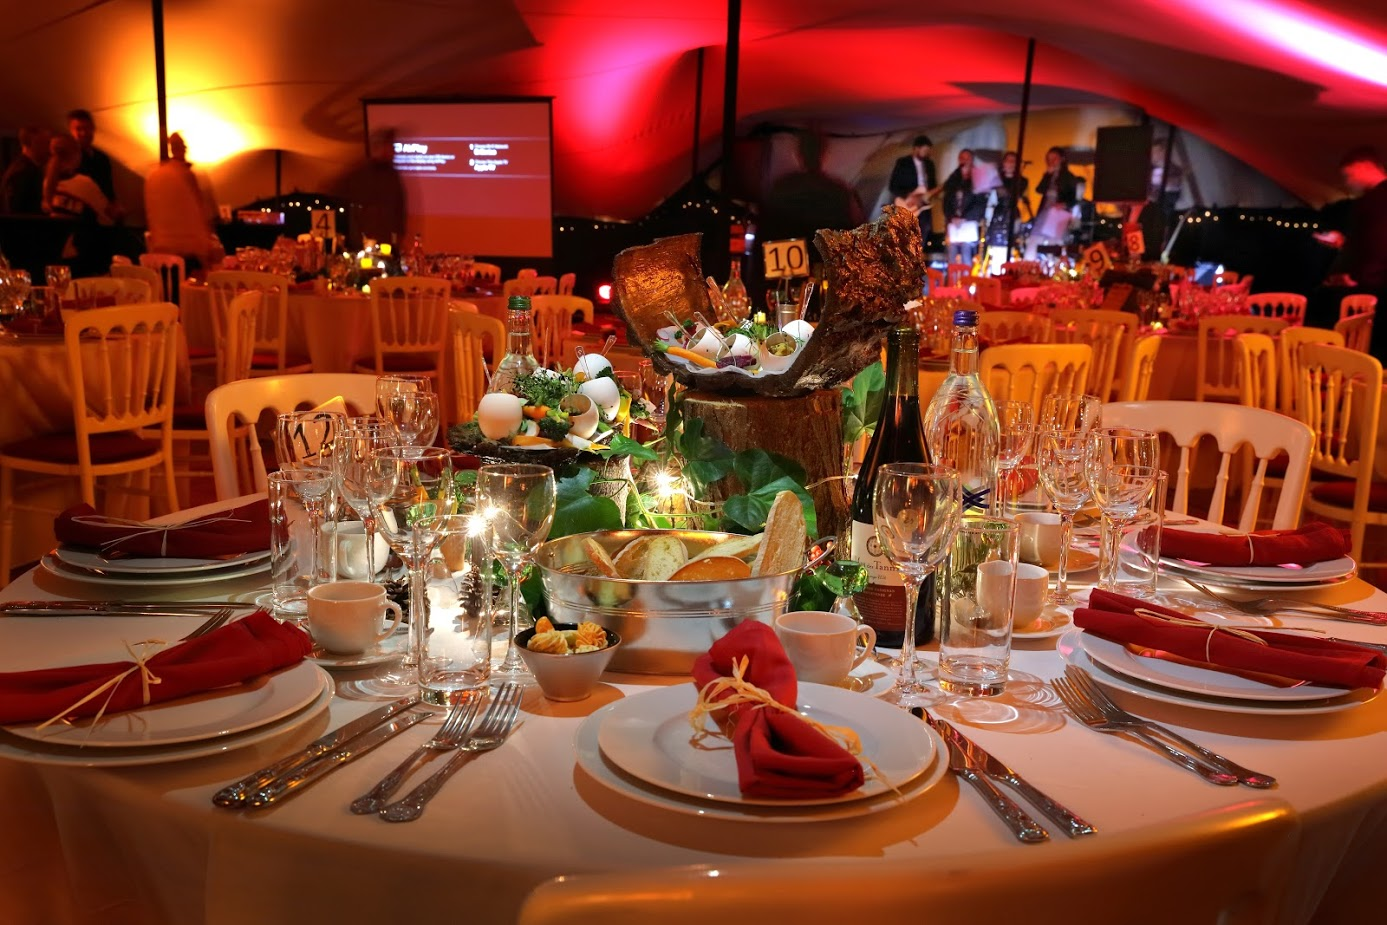 catering service in Mohali,  | Red Tag Caterers | Catering service in Mohali, in royal banquet  - GL43119